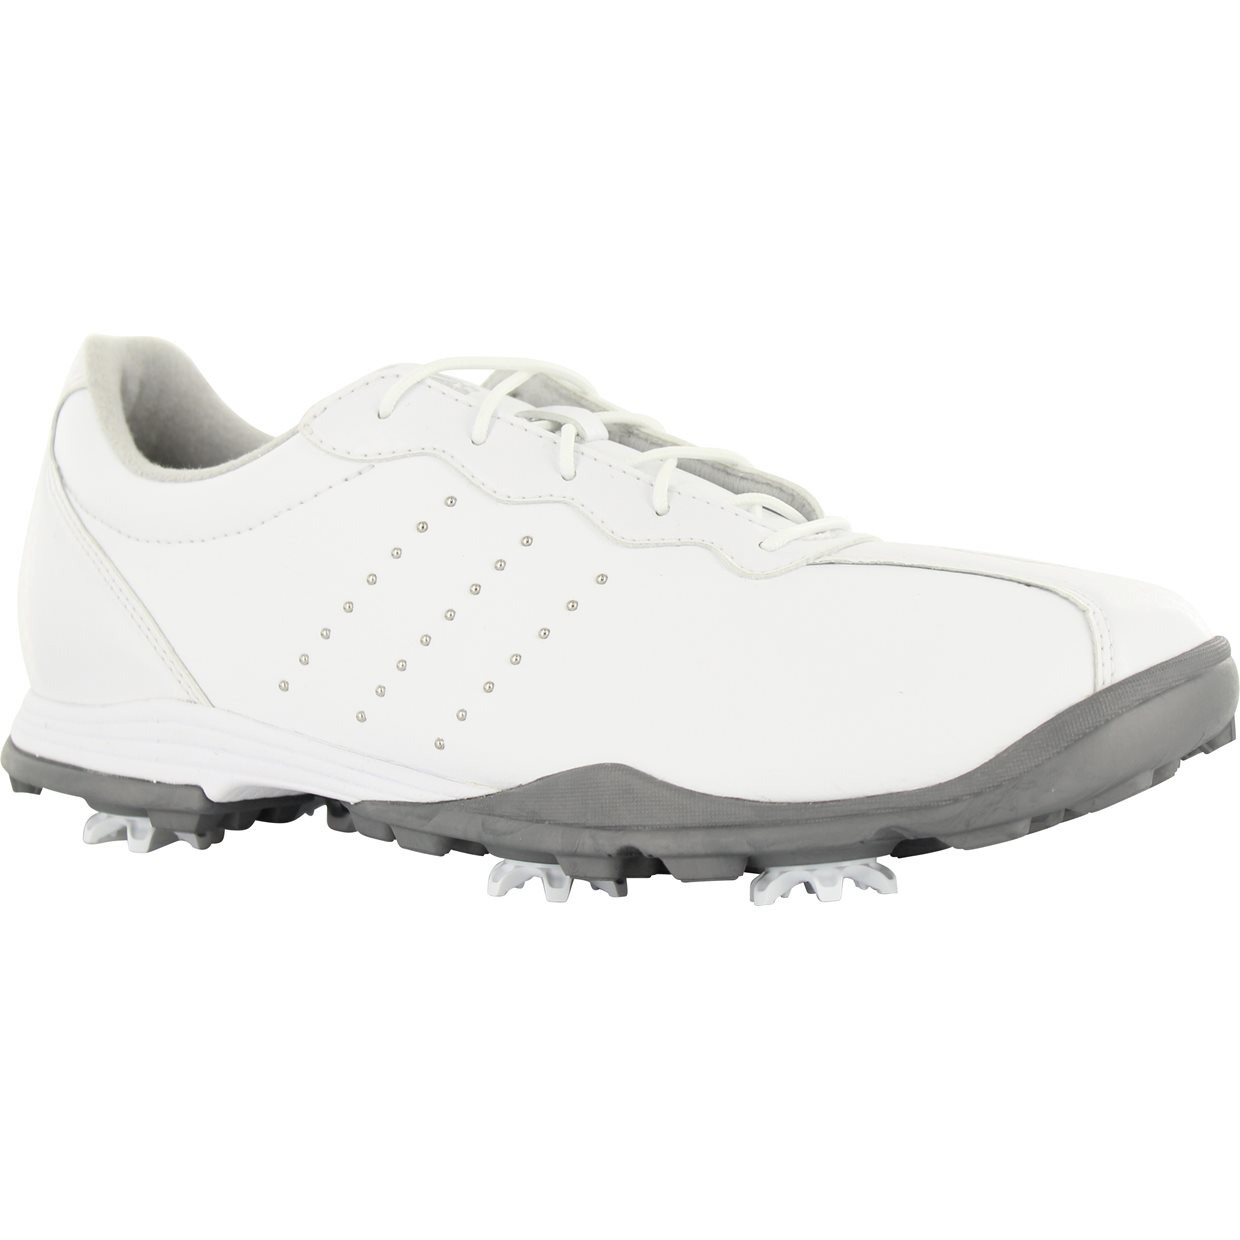 e4c93162eff13b Adidas adiPure DC Ladies Golf Shoes